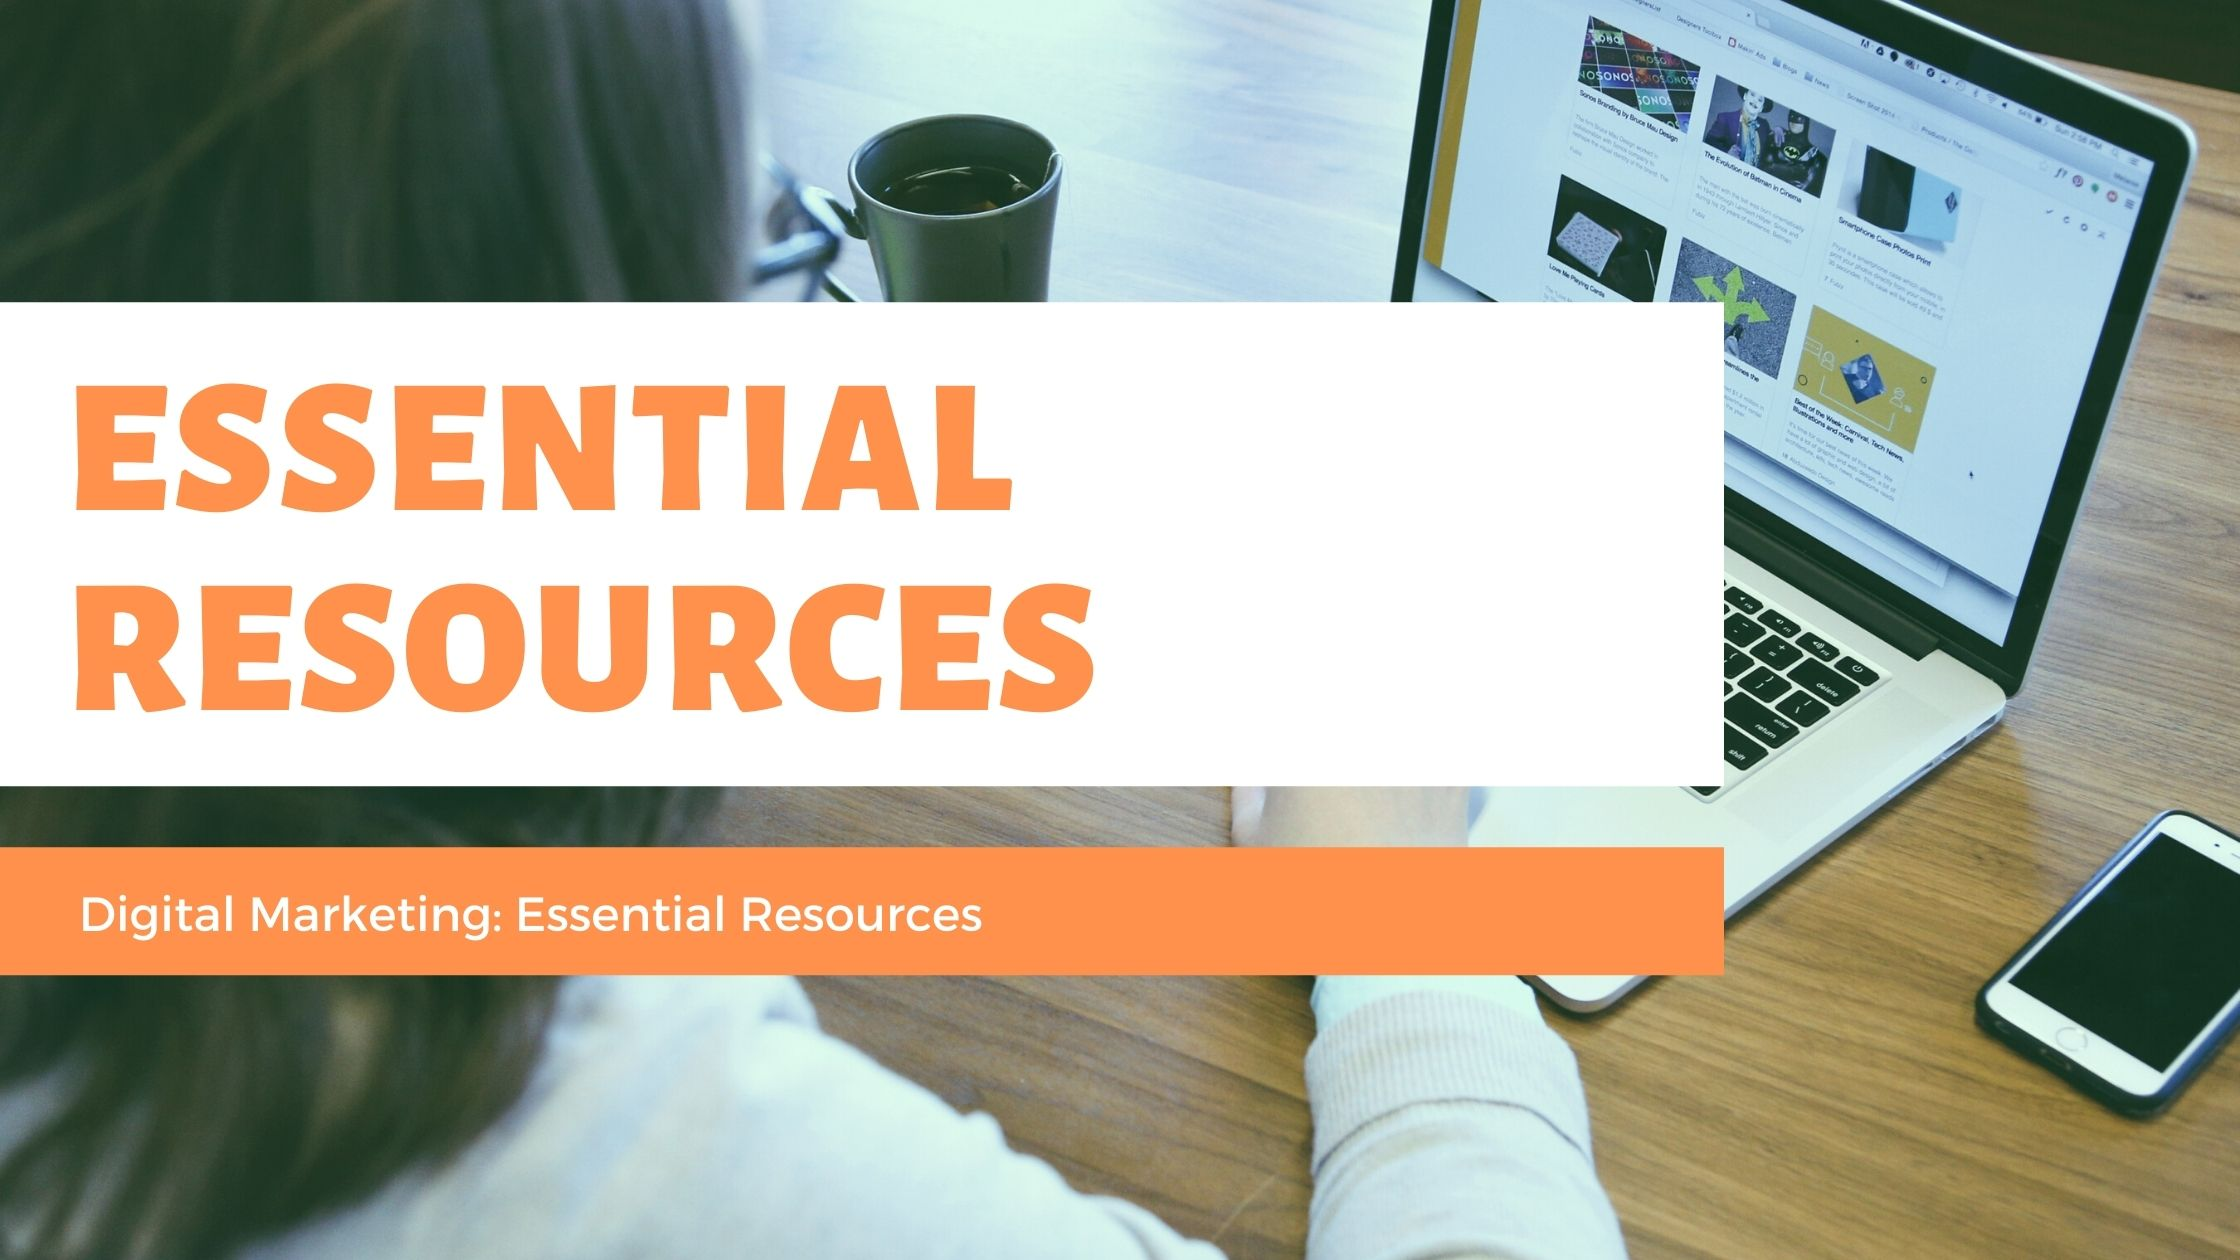 Digital Marketing: Essential Resources